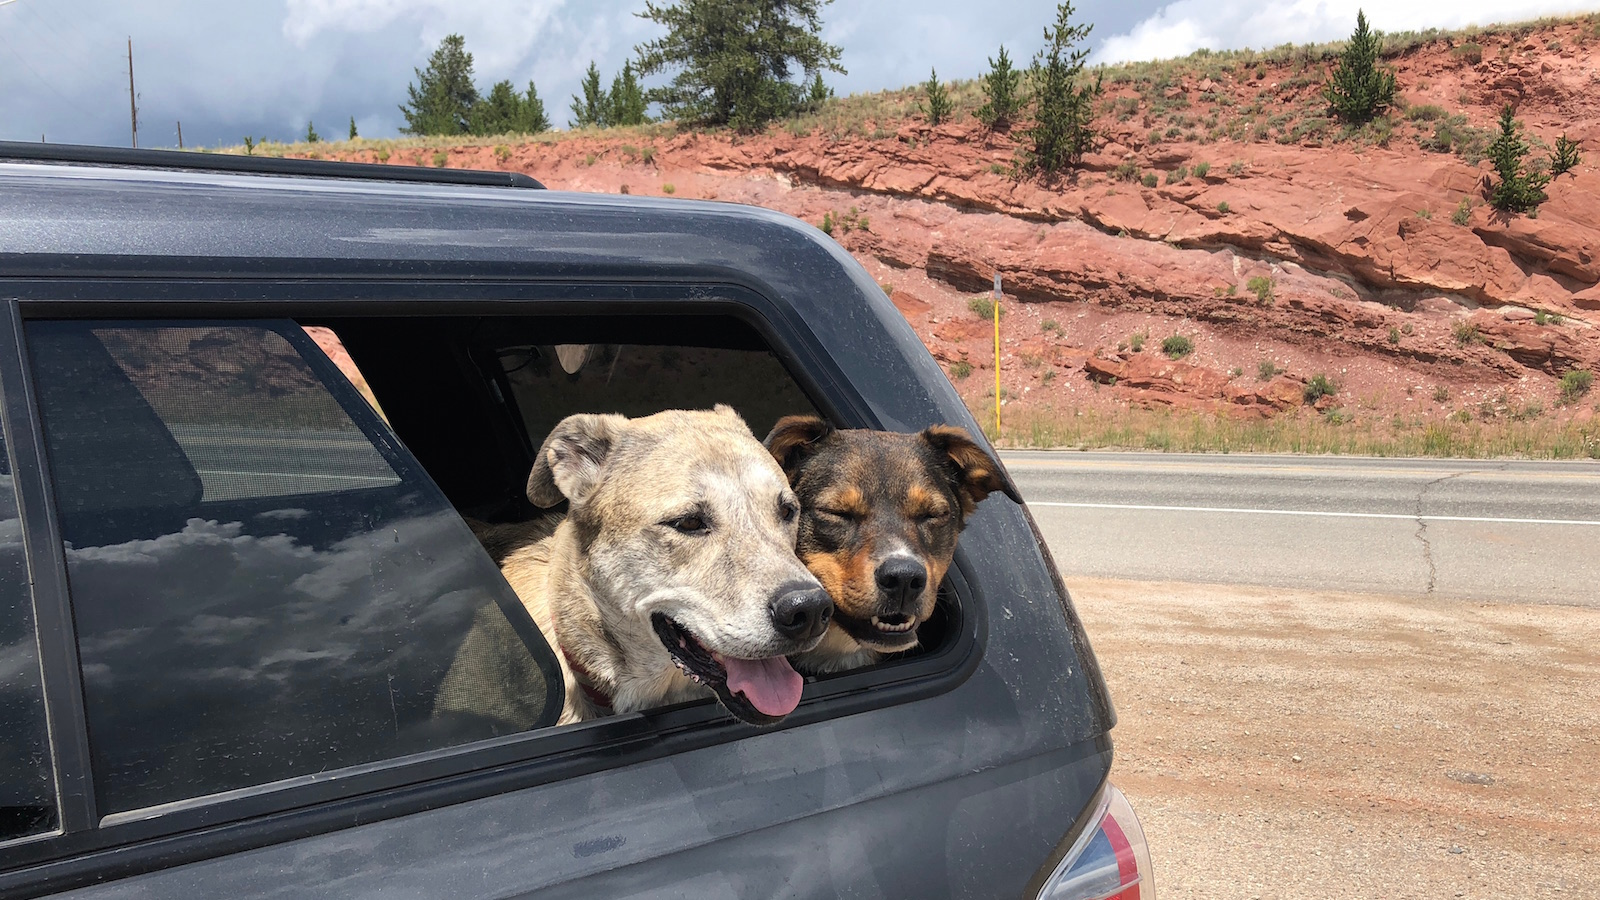 Inspirational Adventure Quote Dogs Truck Mountains